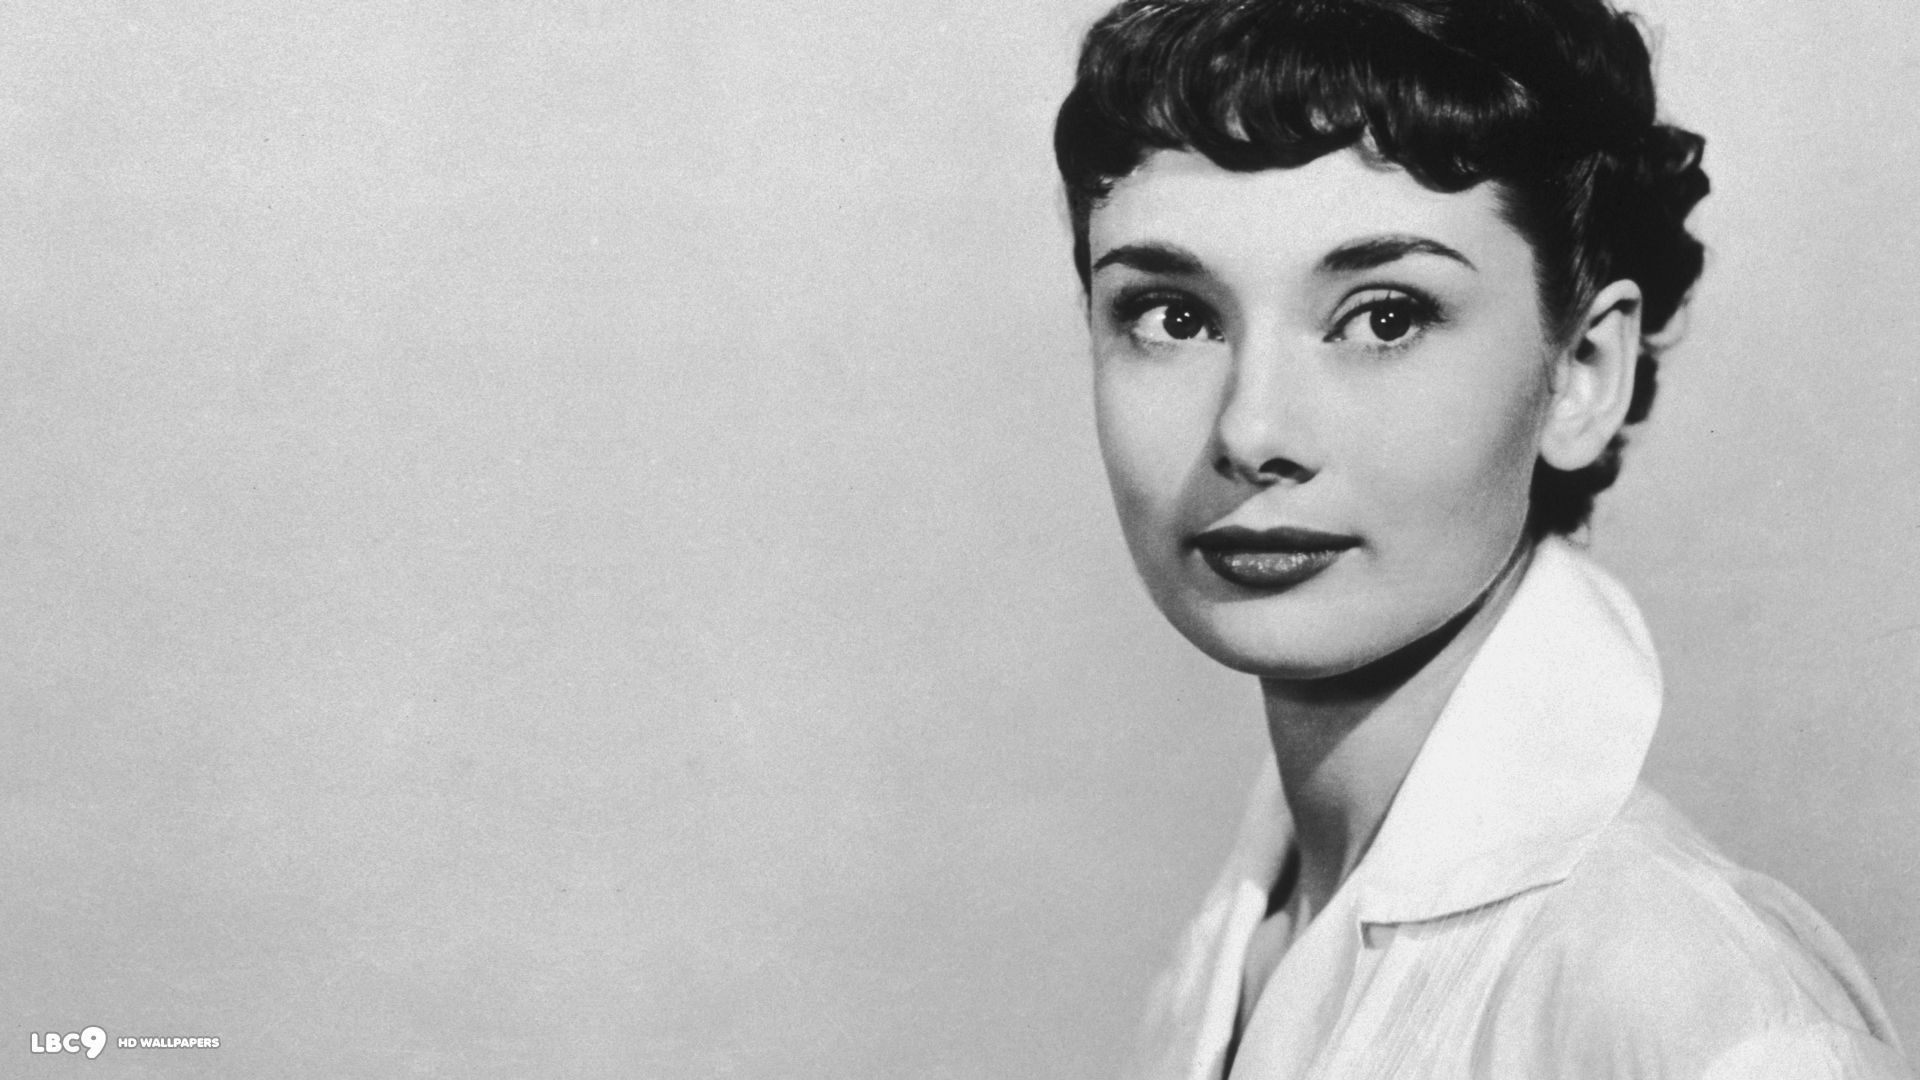 audrey hepburn wallpapers images photos pictures backgrounds